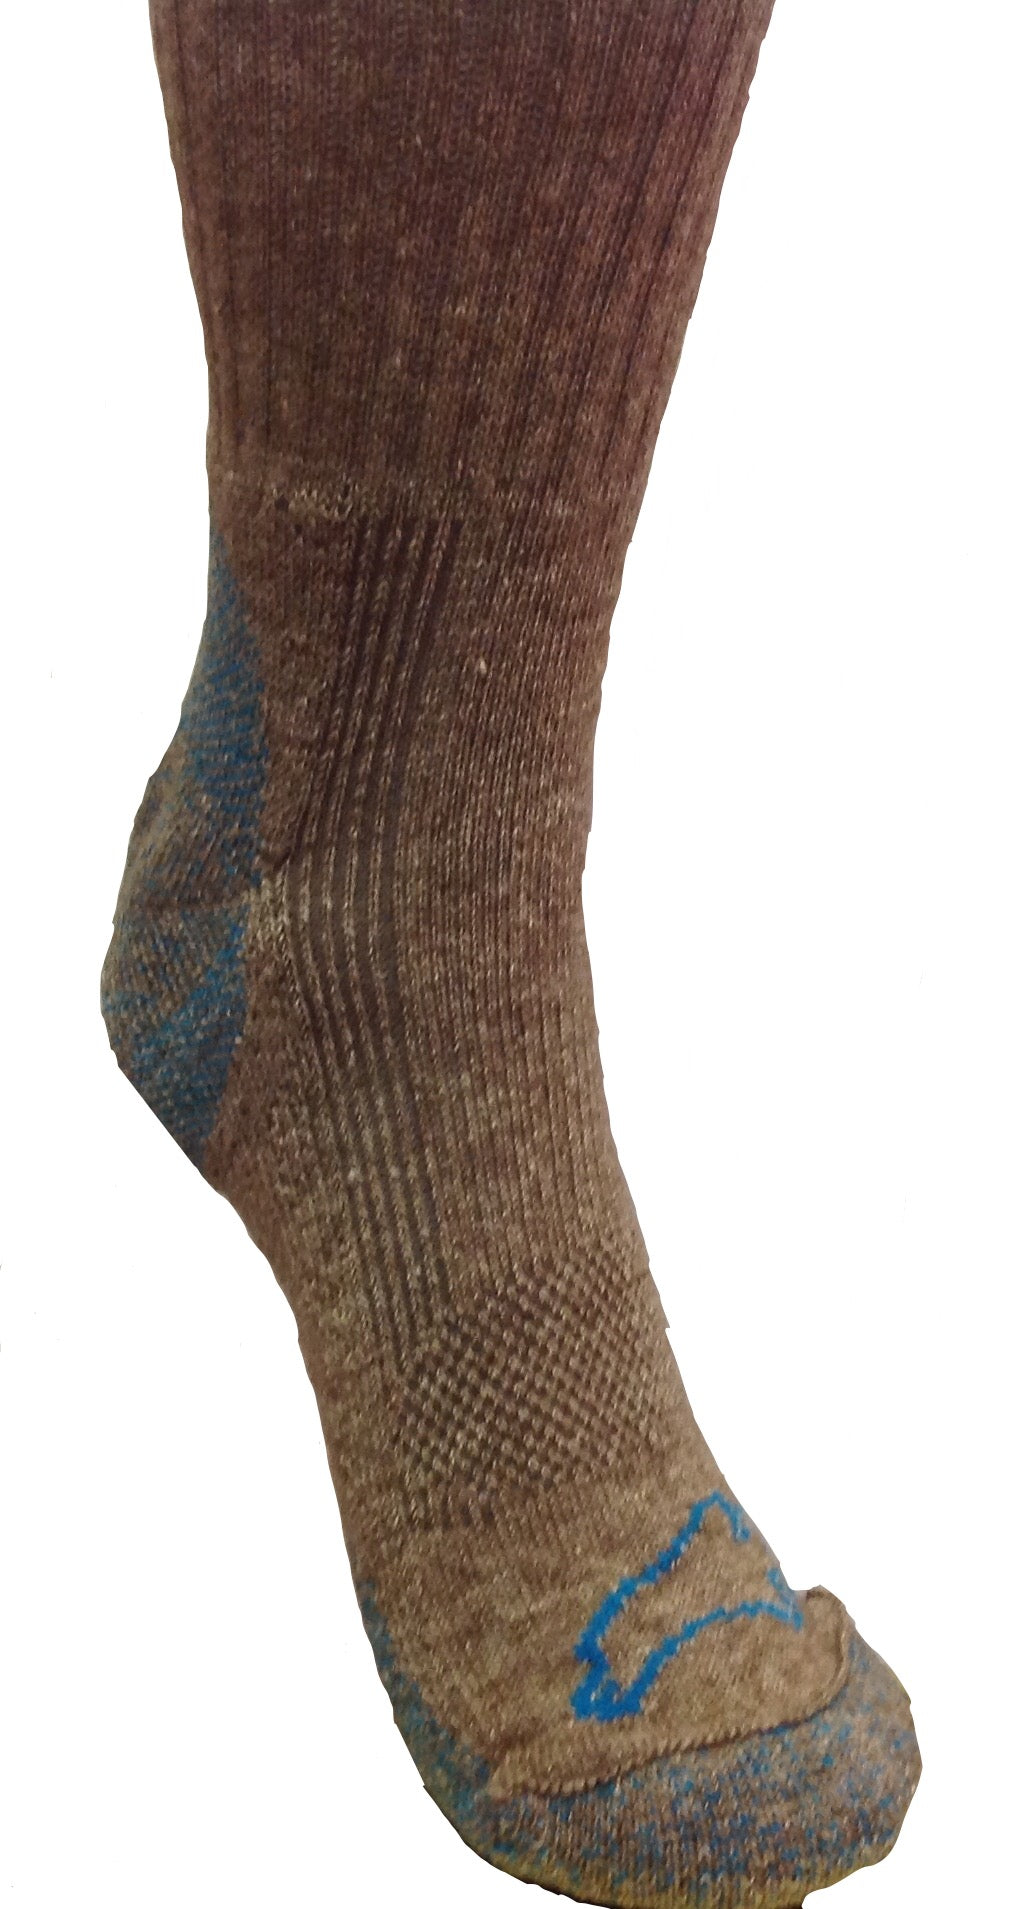 Pro-Gear Bison/Silk Blend Crew Sock